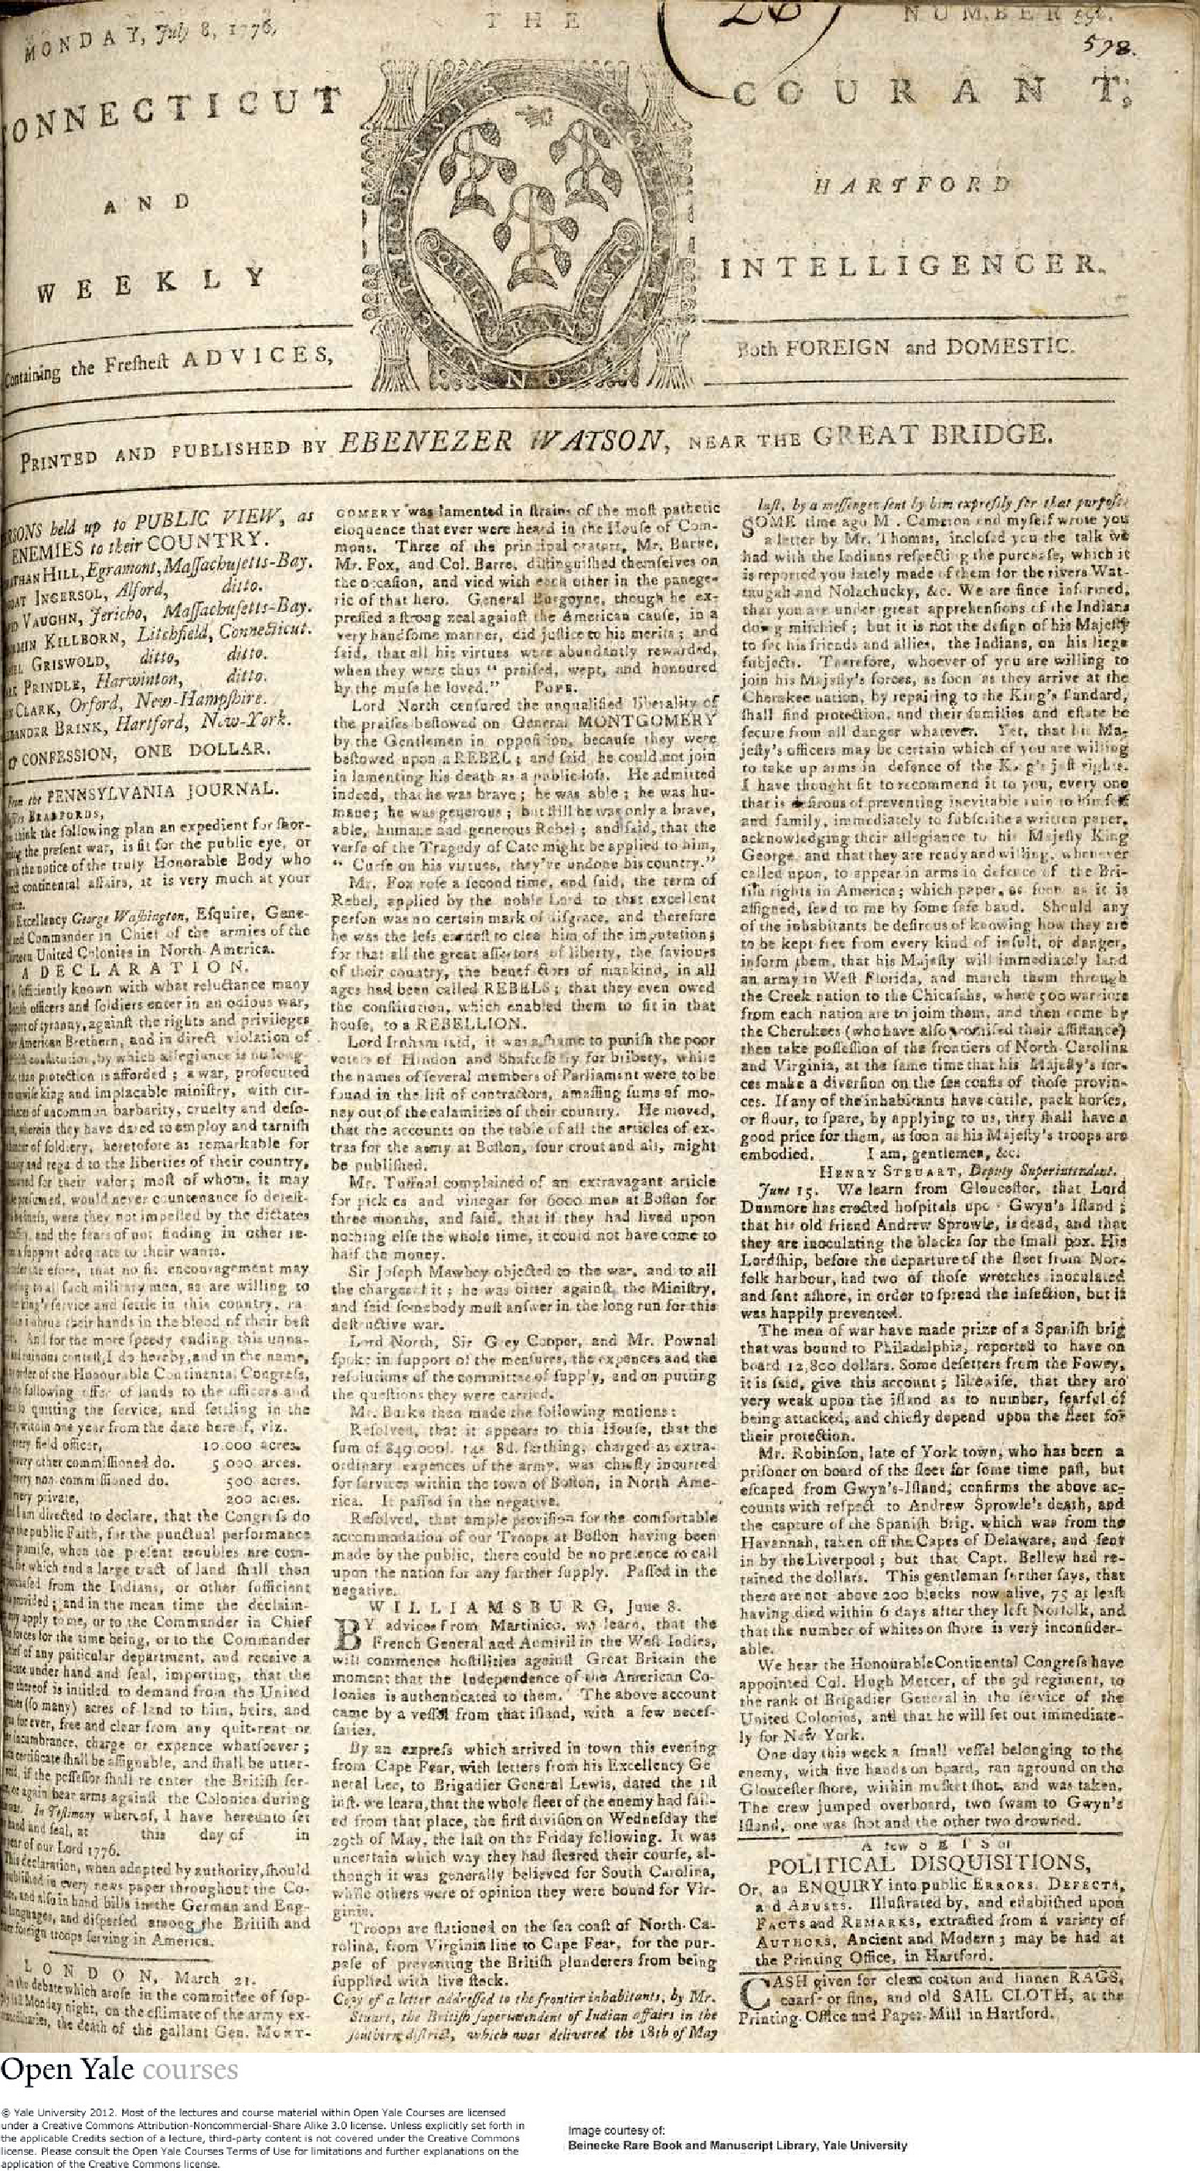 Ct courant history pages july1776 - HIST 116: The American